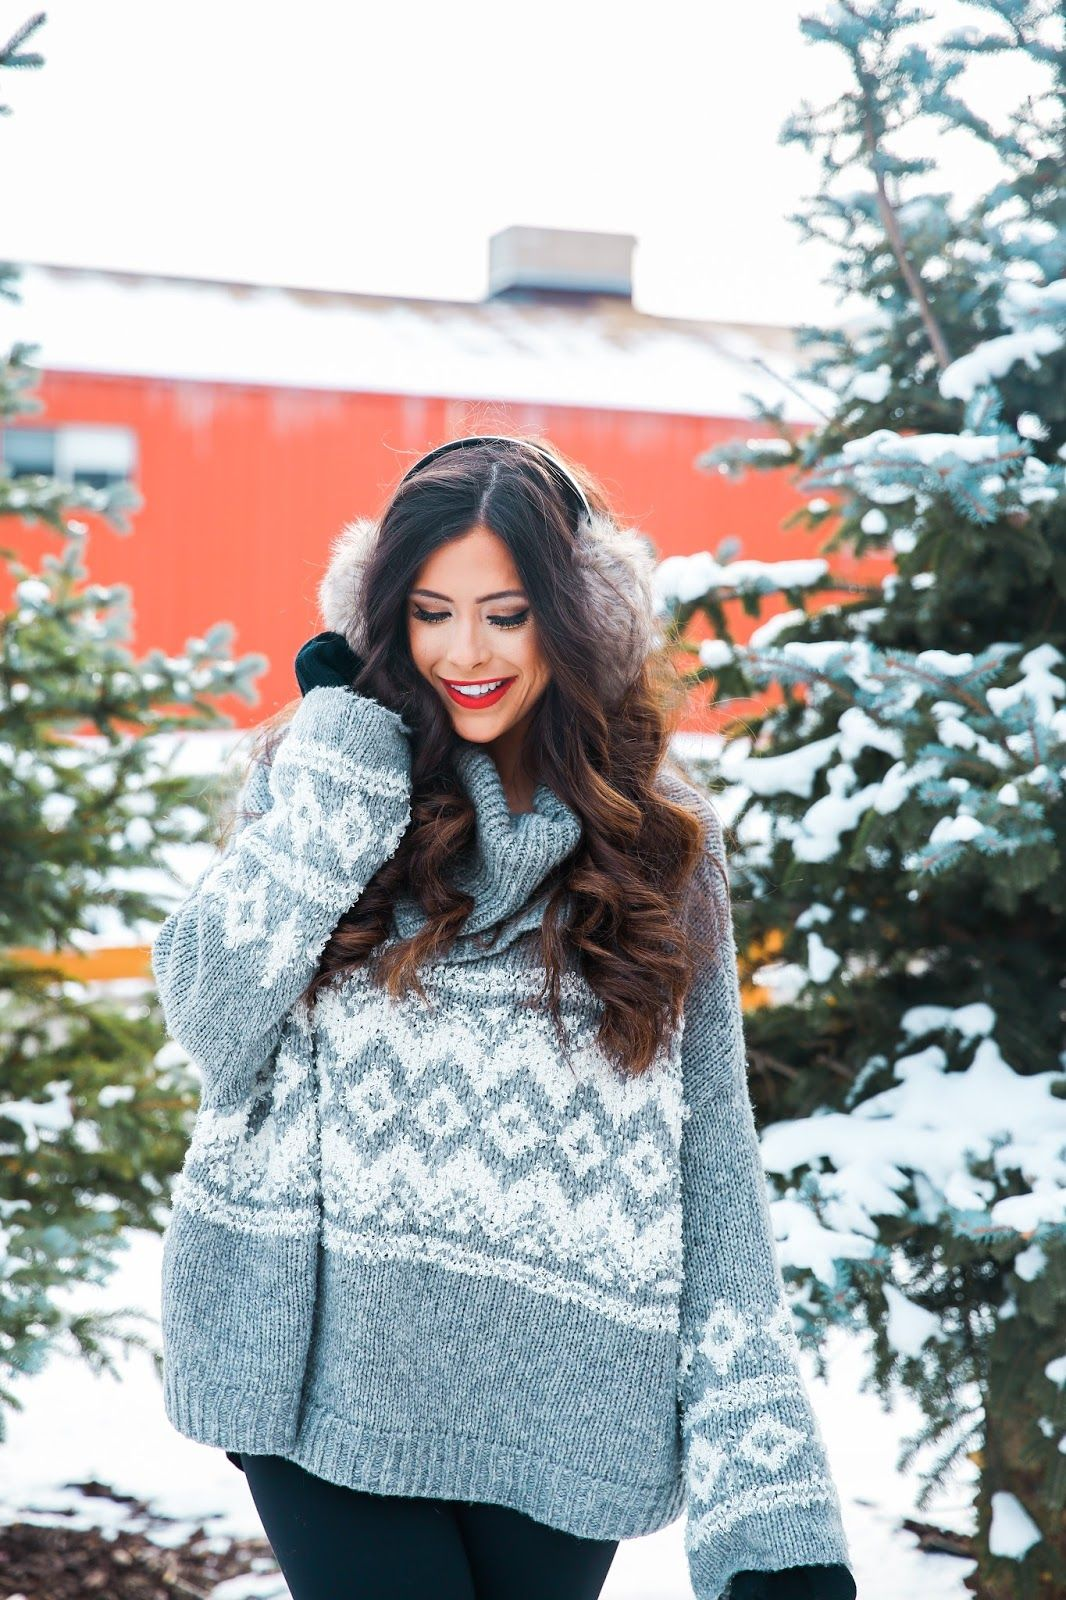 The Sweetest Thing | Winter Fashion | Pinterest | Red hunter boots ...